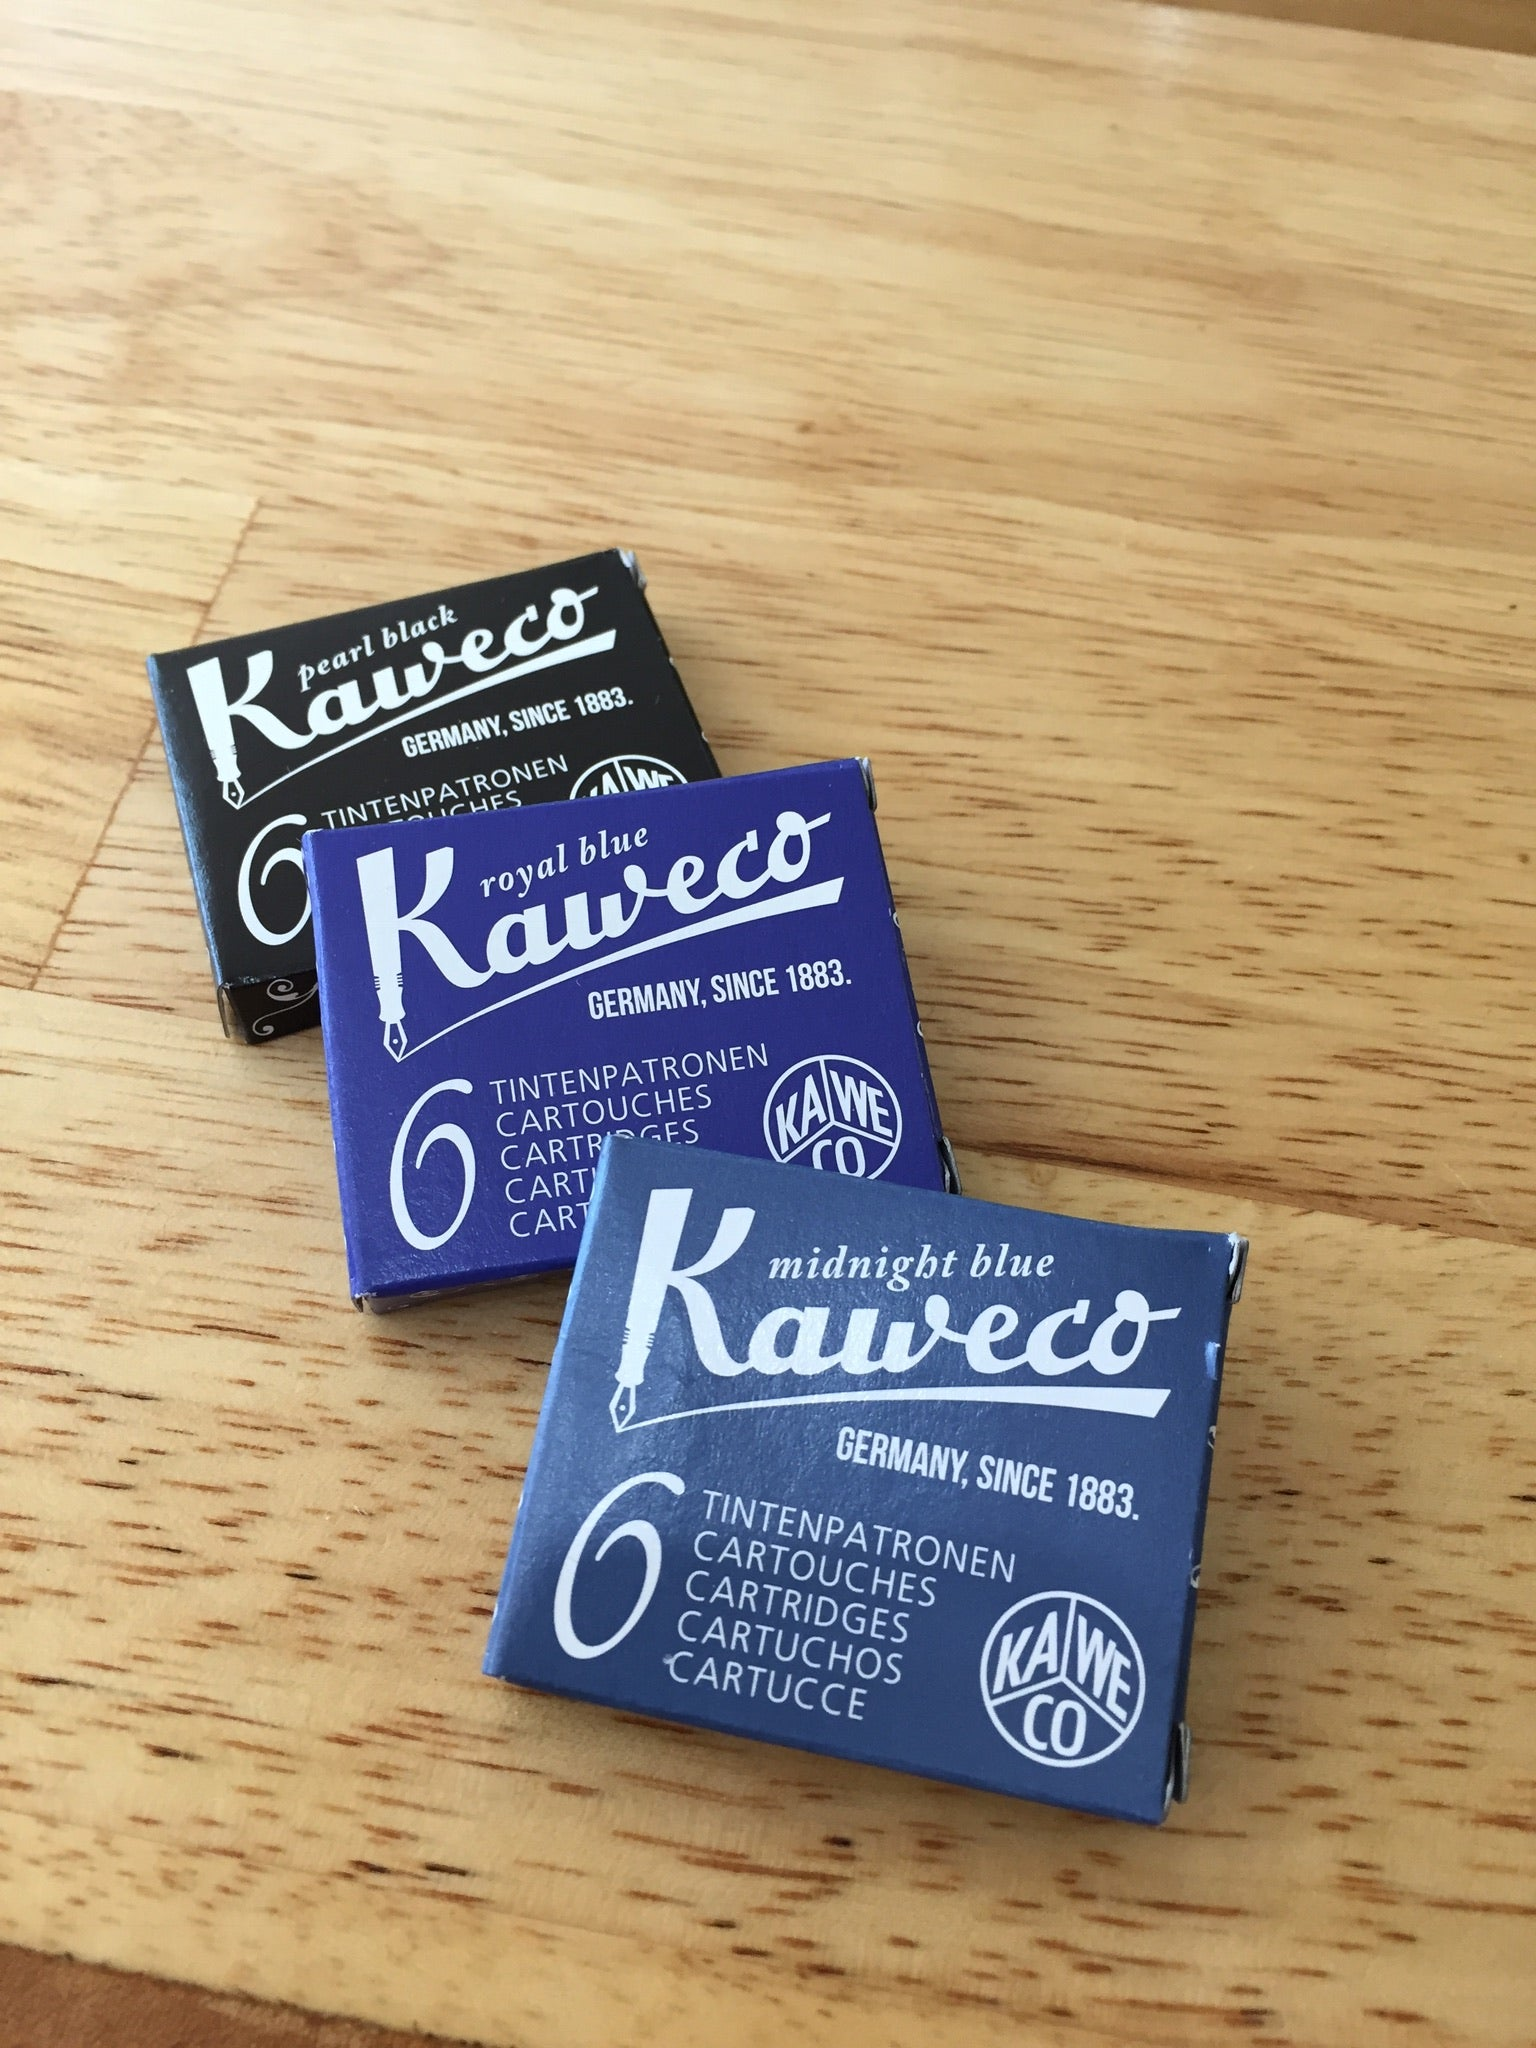 Kaweco Cartridges - 6 Pack